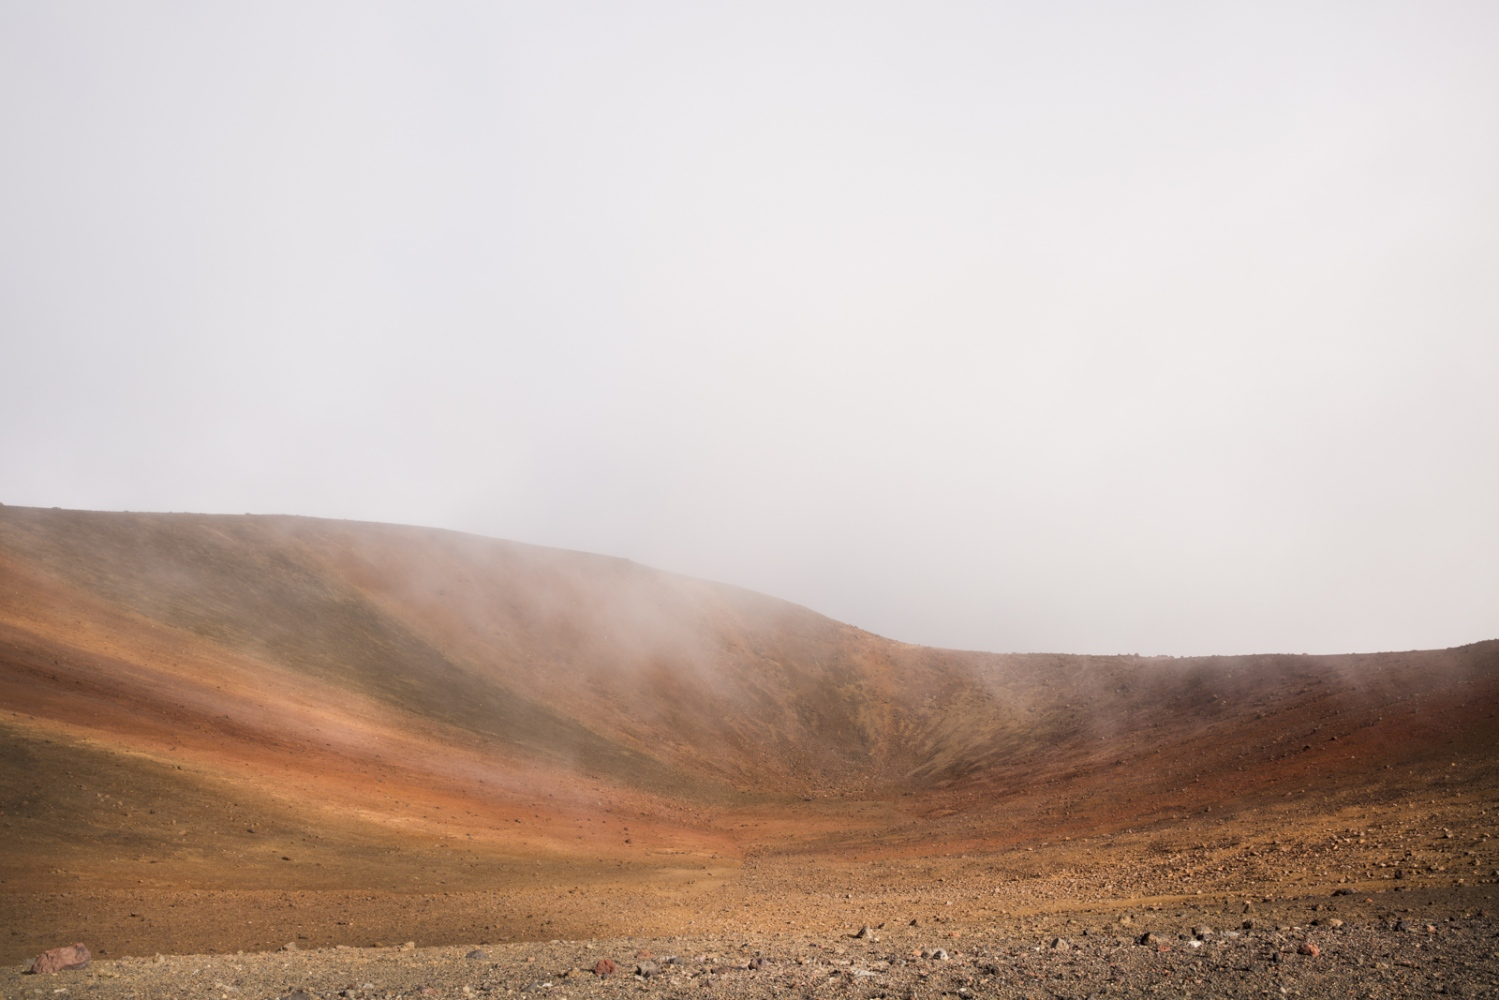 A landscape whose ground looks similar to the one that can be found on planet Mars is photographed on volcano Mauna Kea. Hawaii, Big Island.